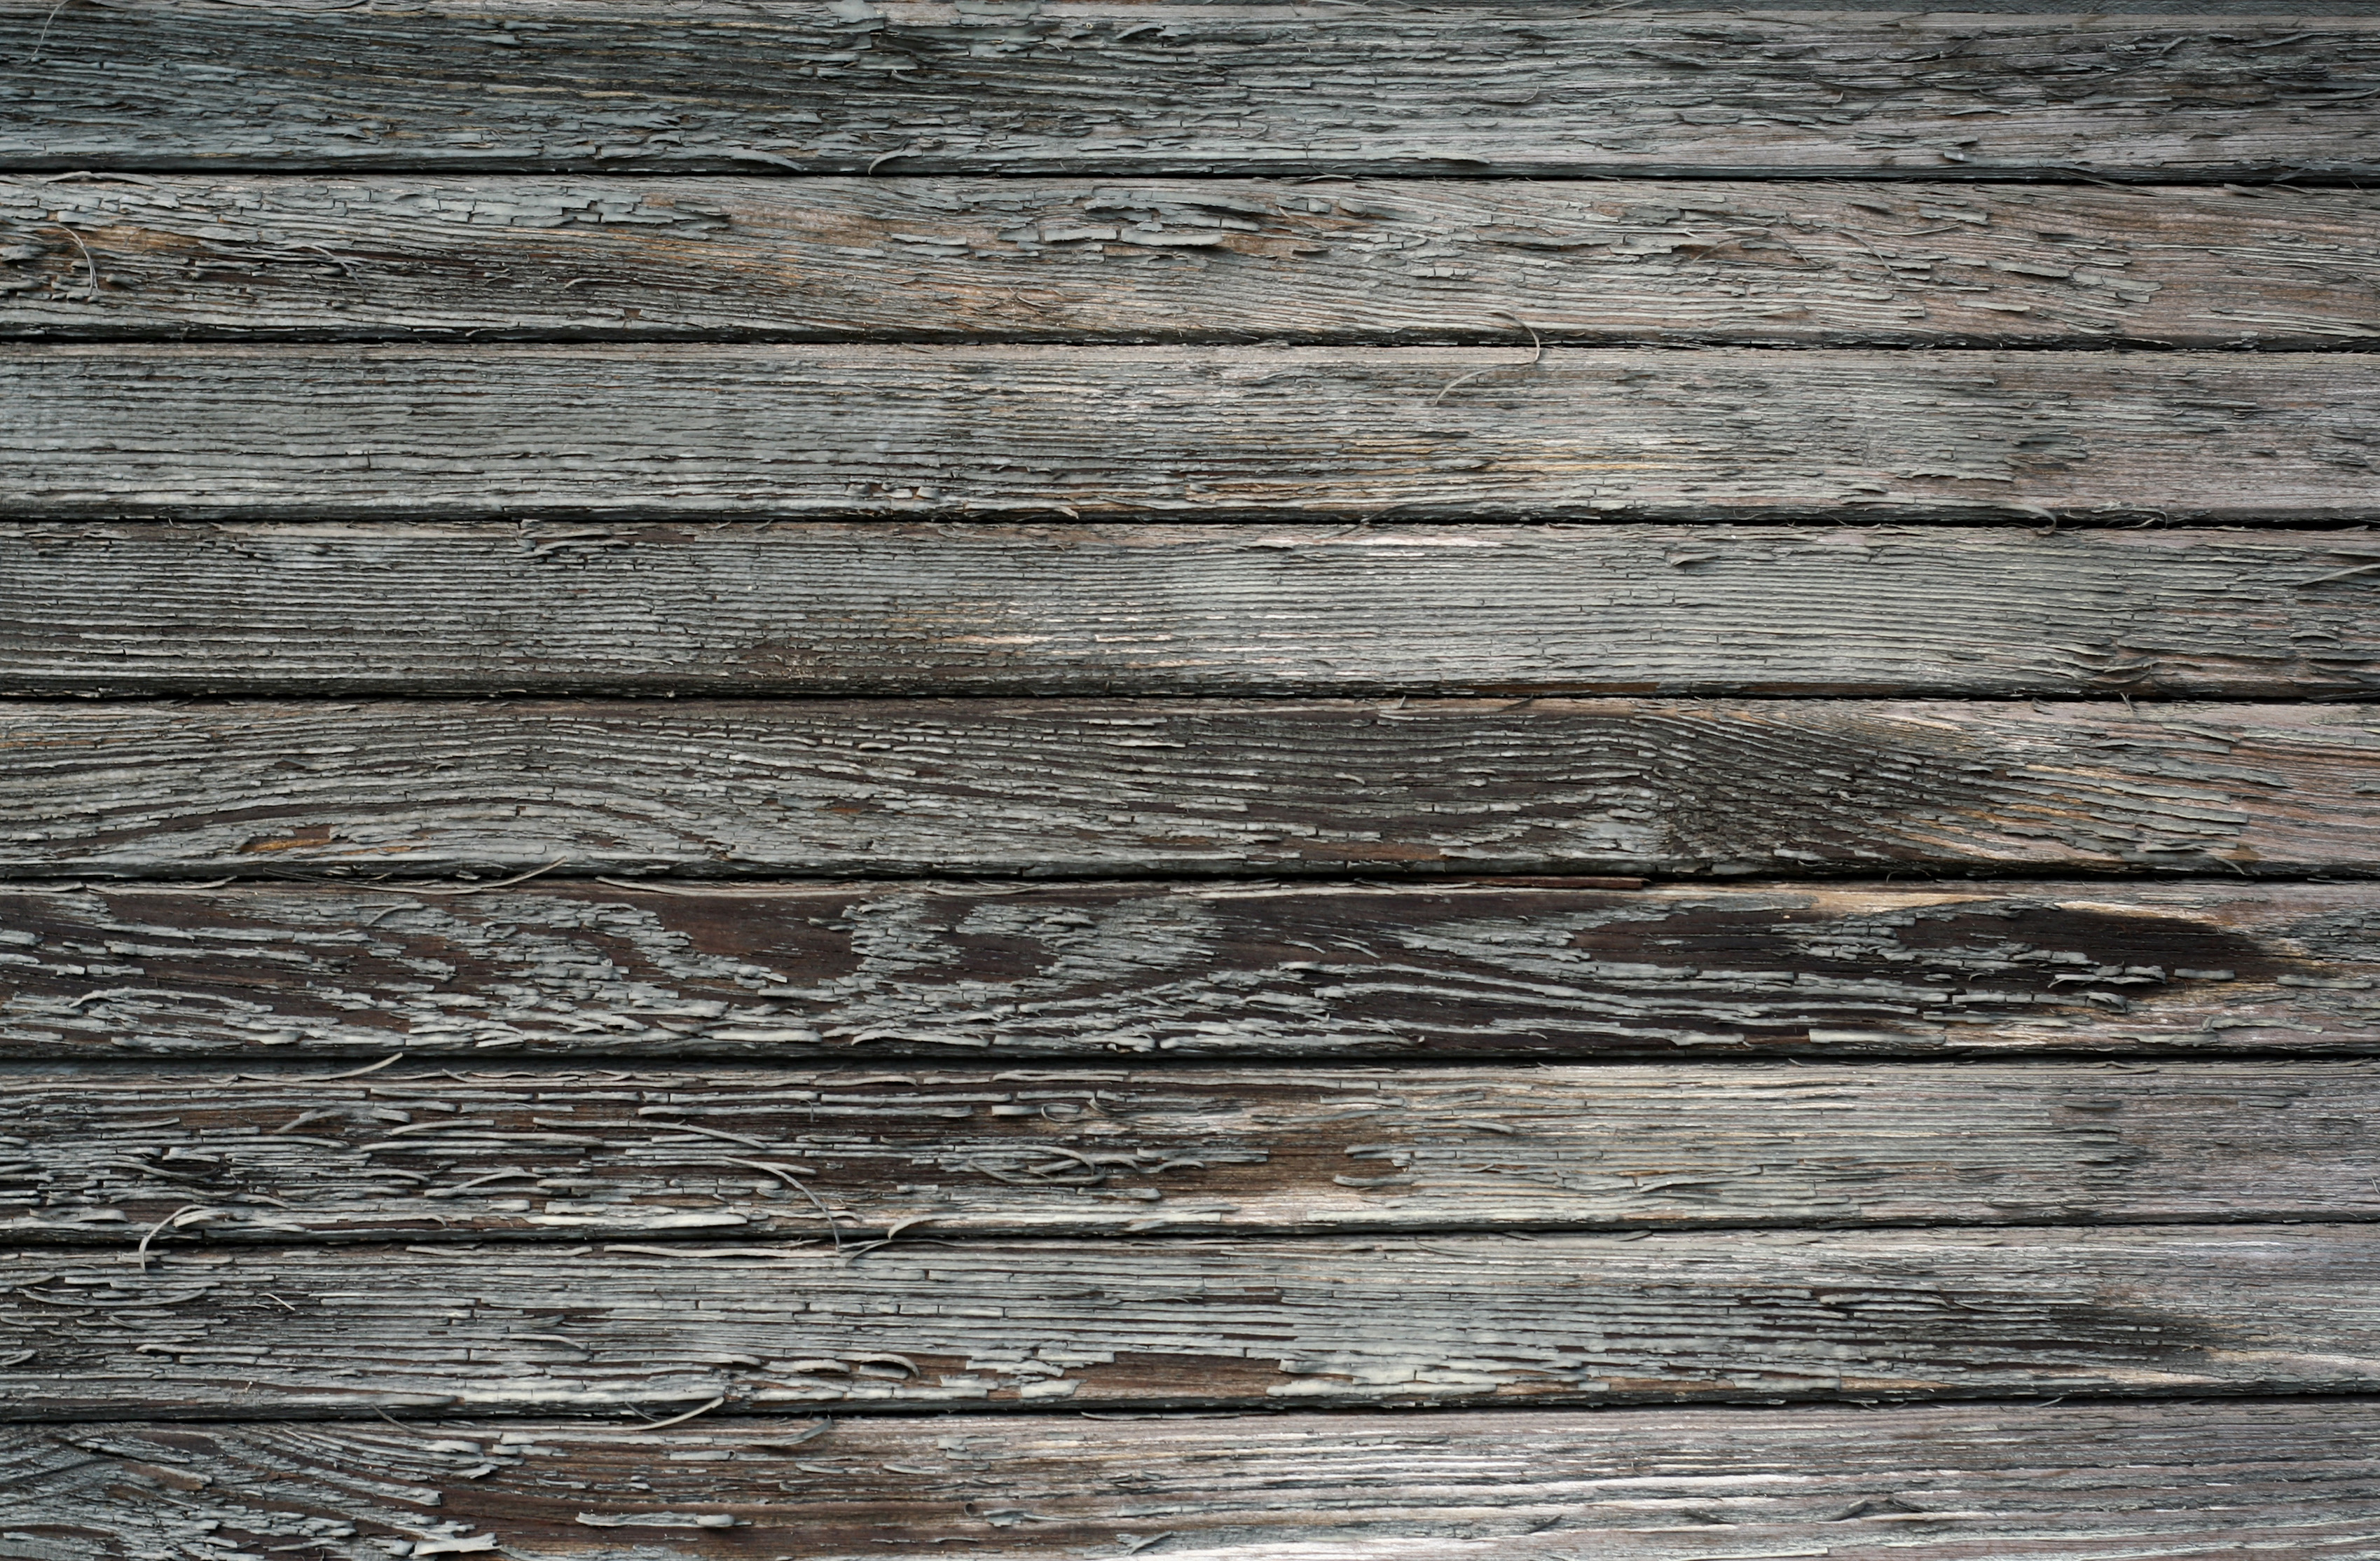 Old wooden boards photo